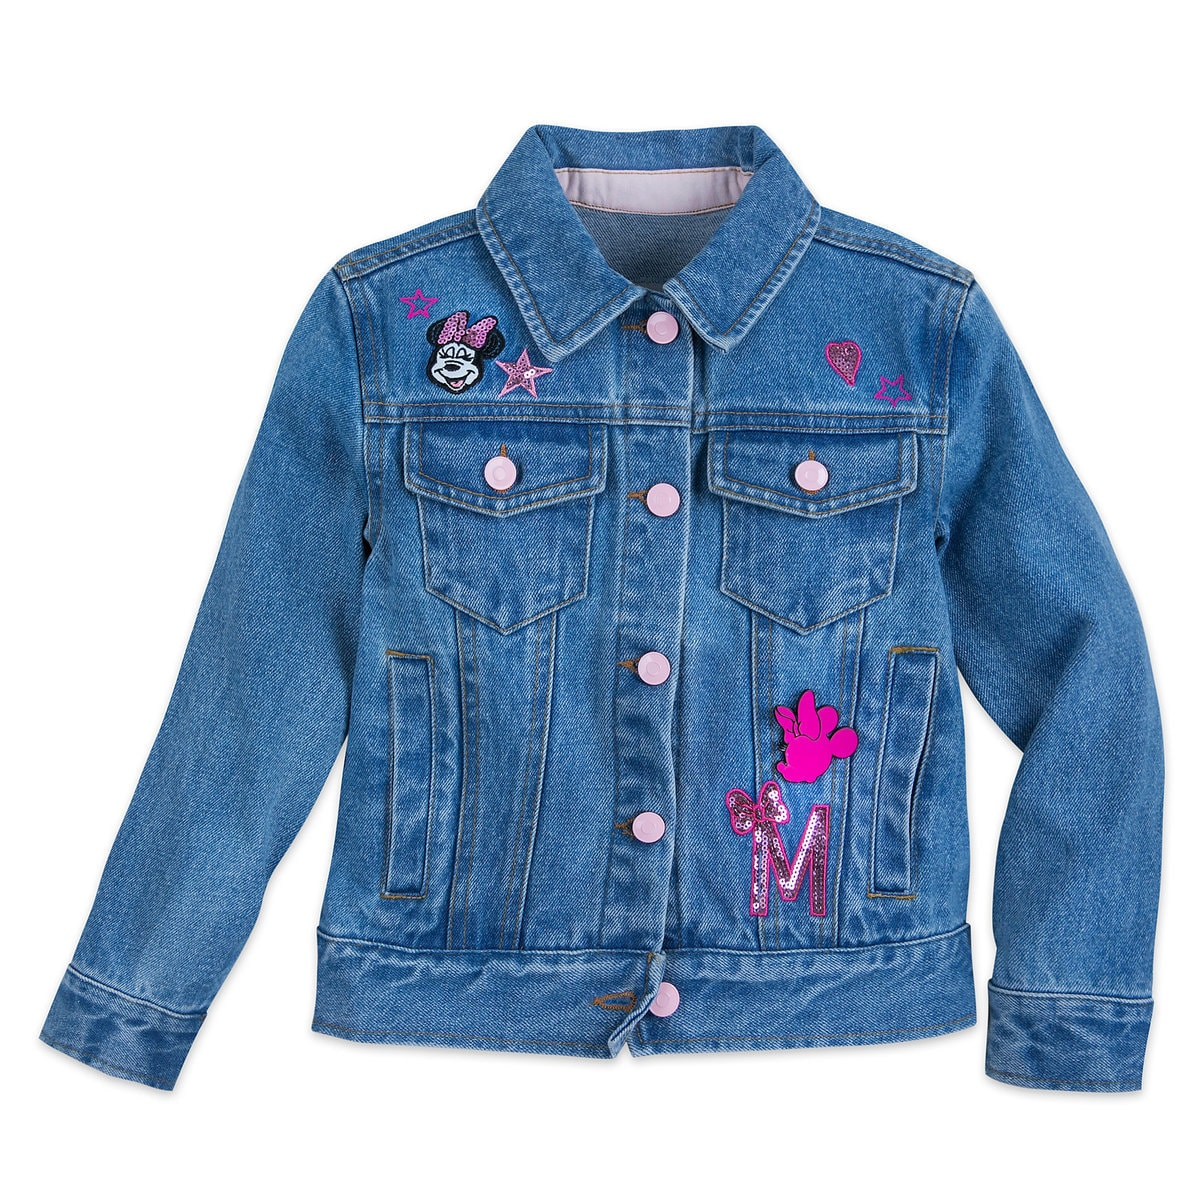 e8d78846 Product Image of Minnie Mouse Denim Jacket for Girls # 1